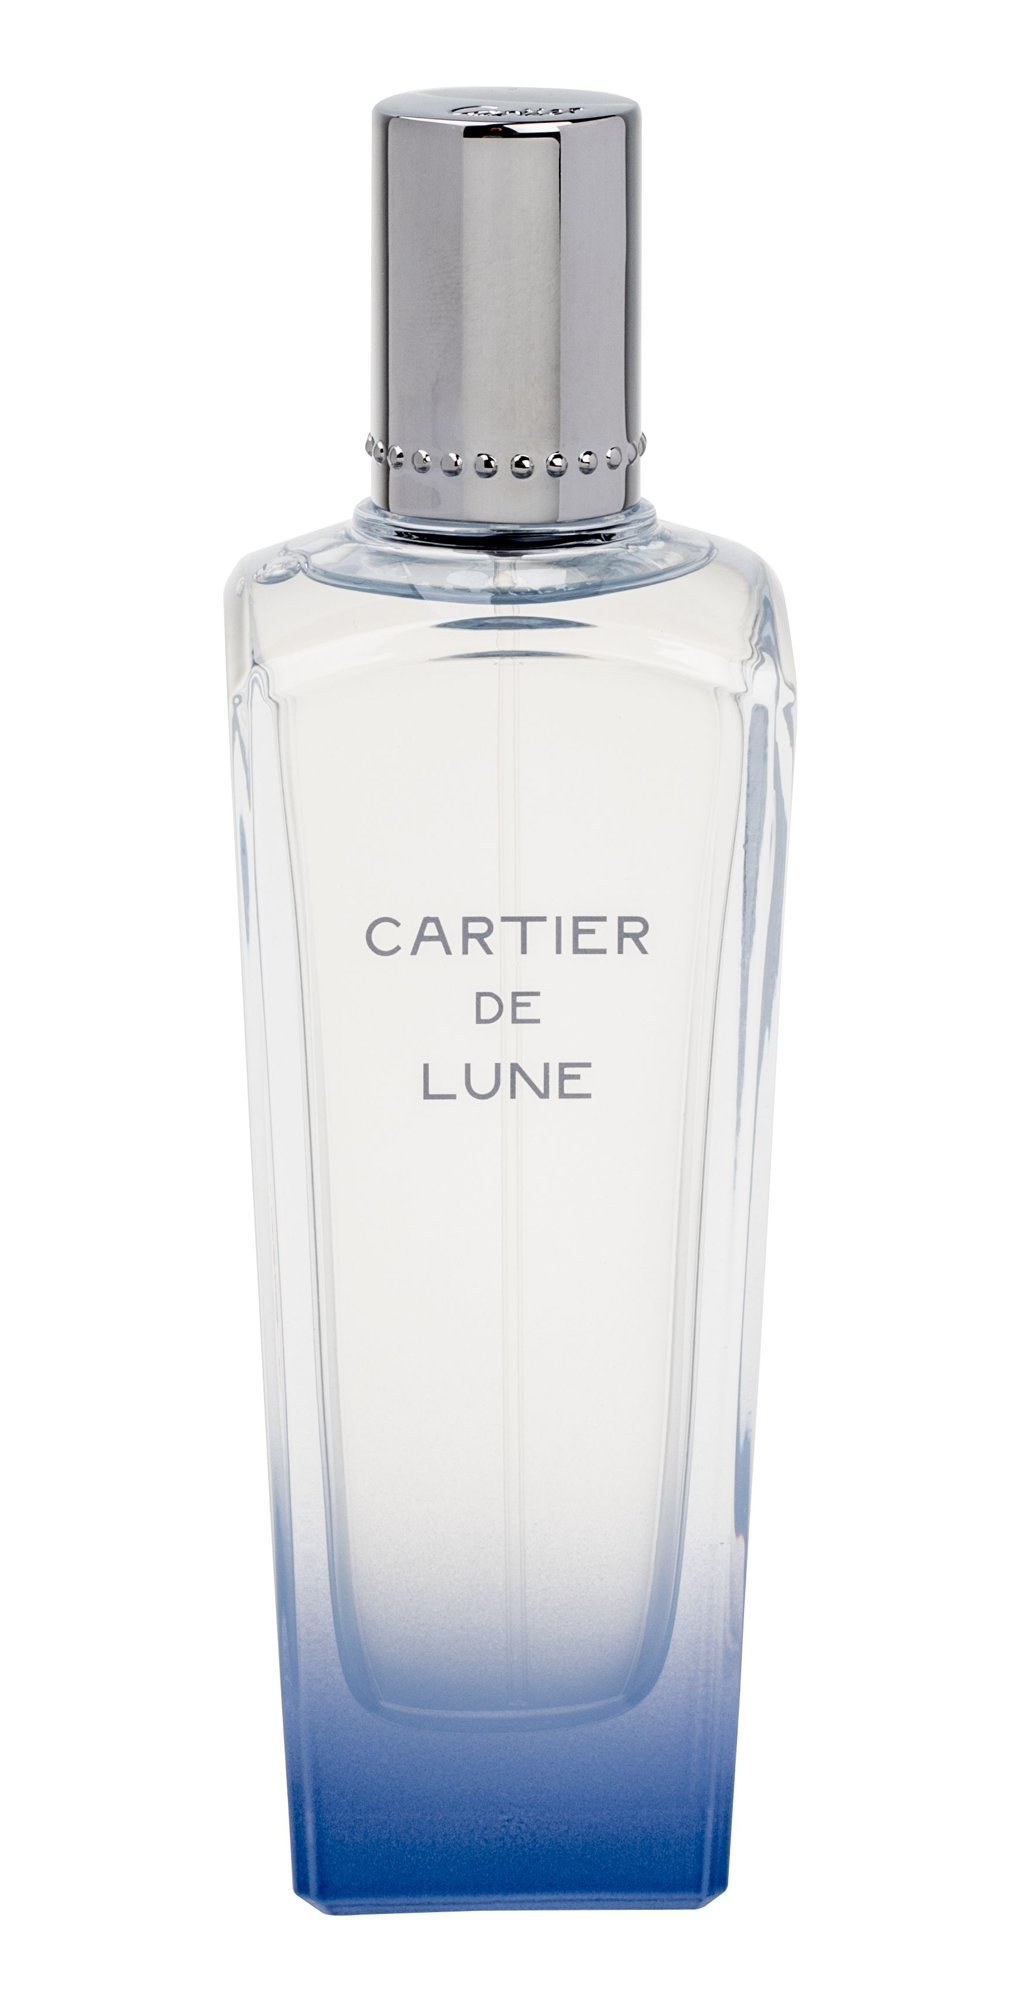 Cartier Cartier De Lune EDT 75ml